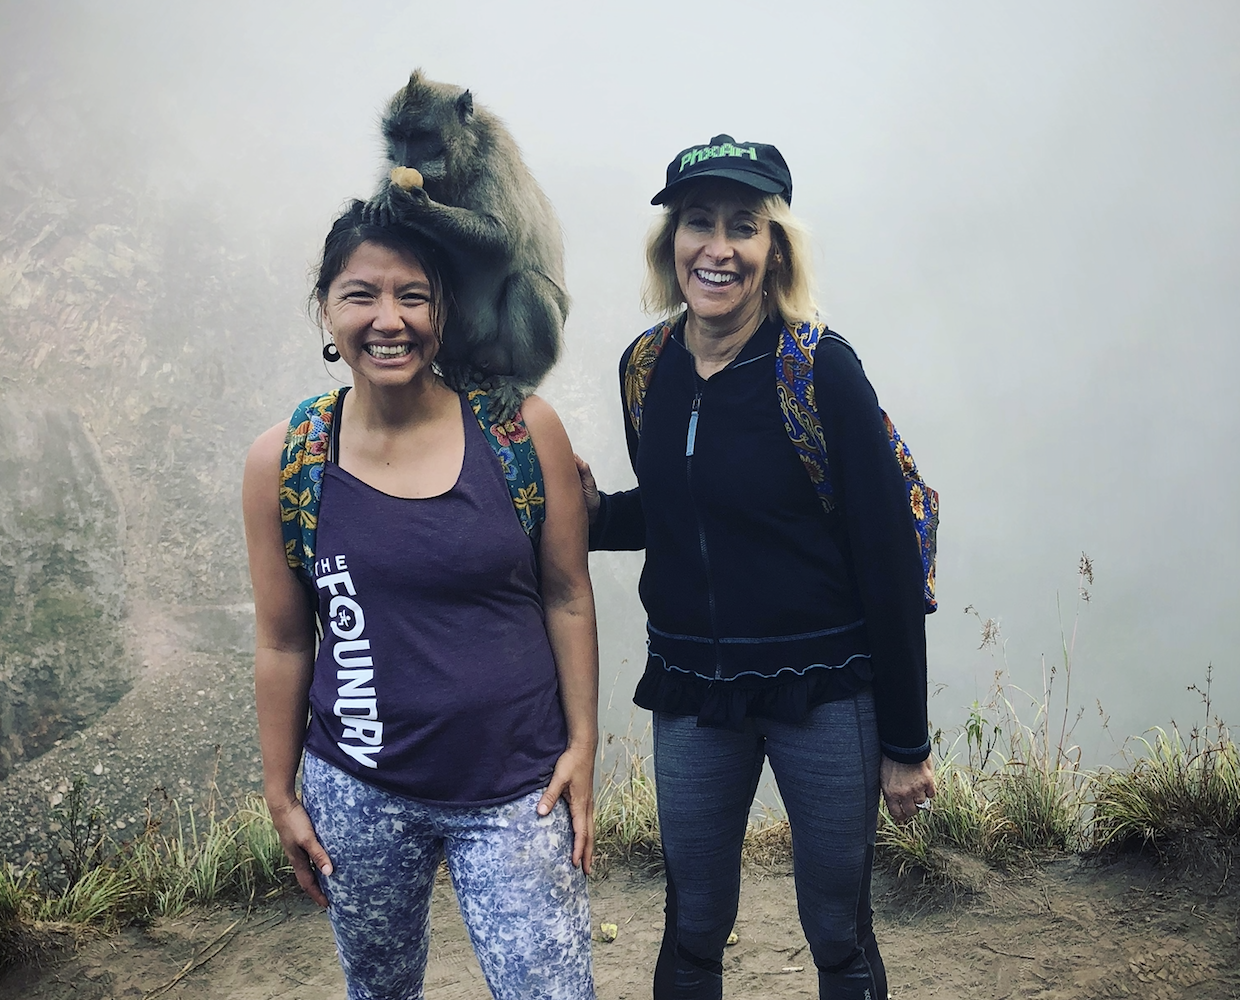 Sometimes you just gotta monkey around! Native greeters at the top of the volcano! -